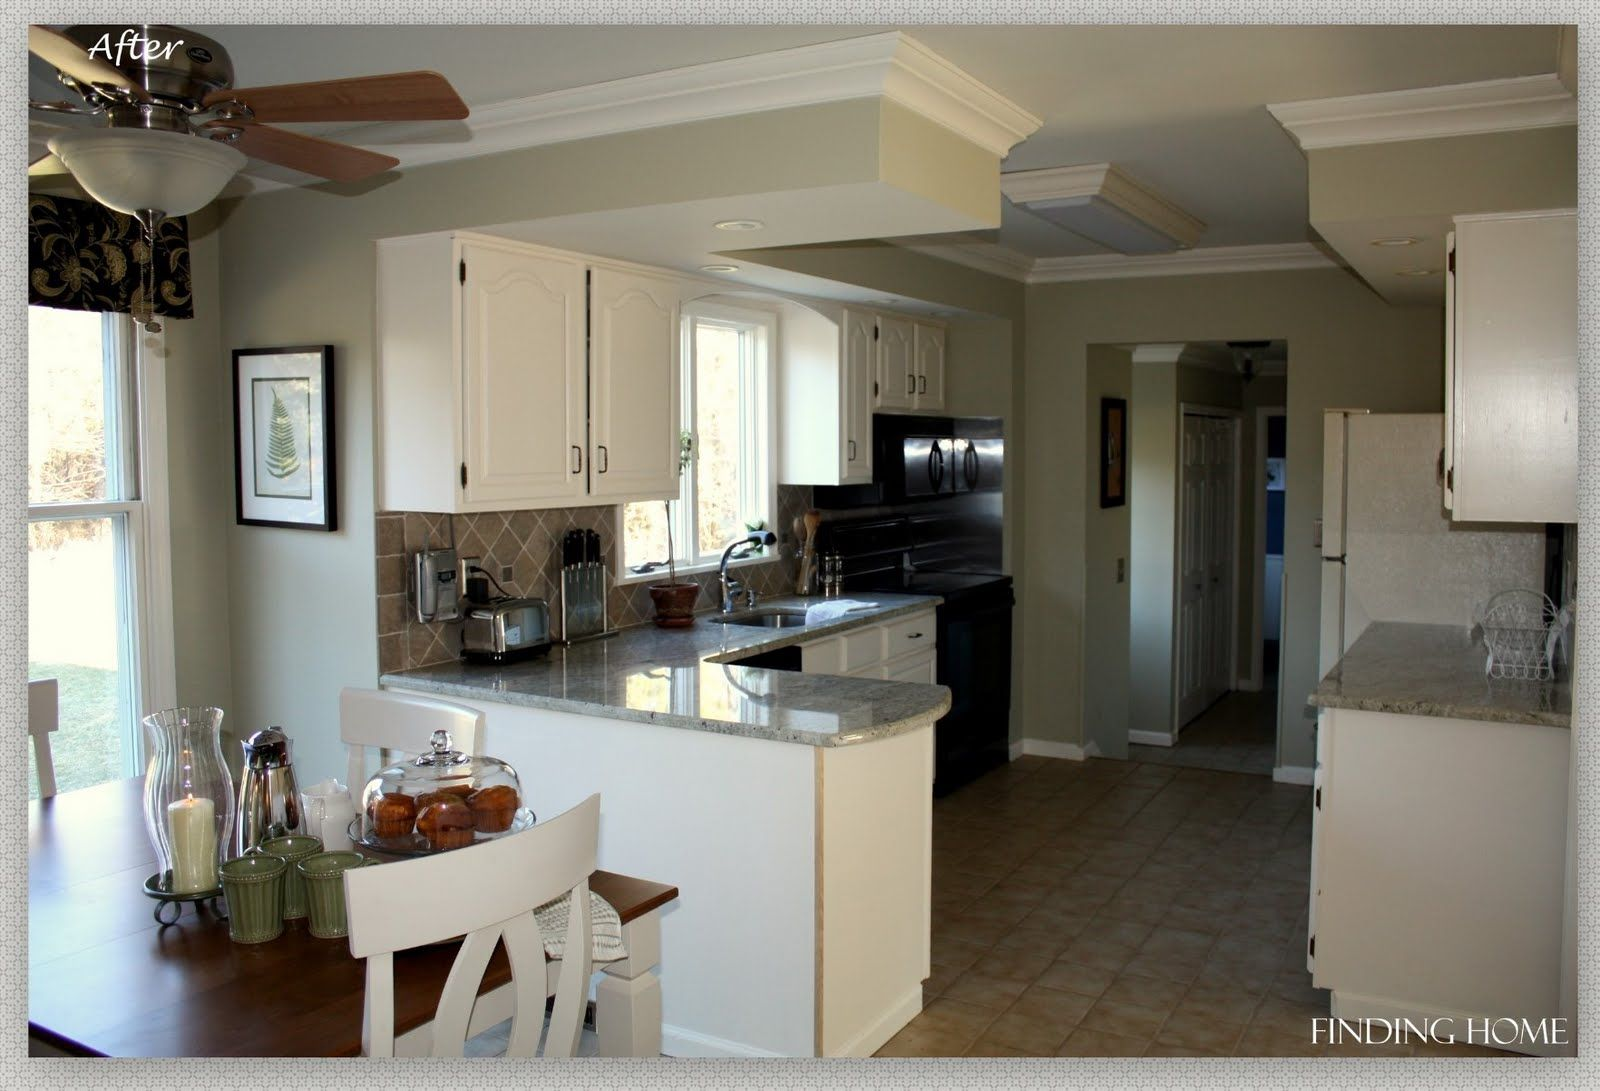 paint kitchen cabinets white small kitchen white cabinets 17 best images about kitchen on pinterest modern kitchen cabinets kitchen design software and small kitchens